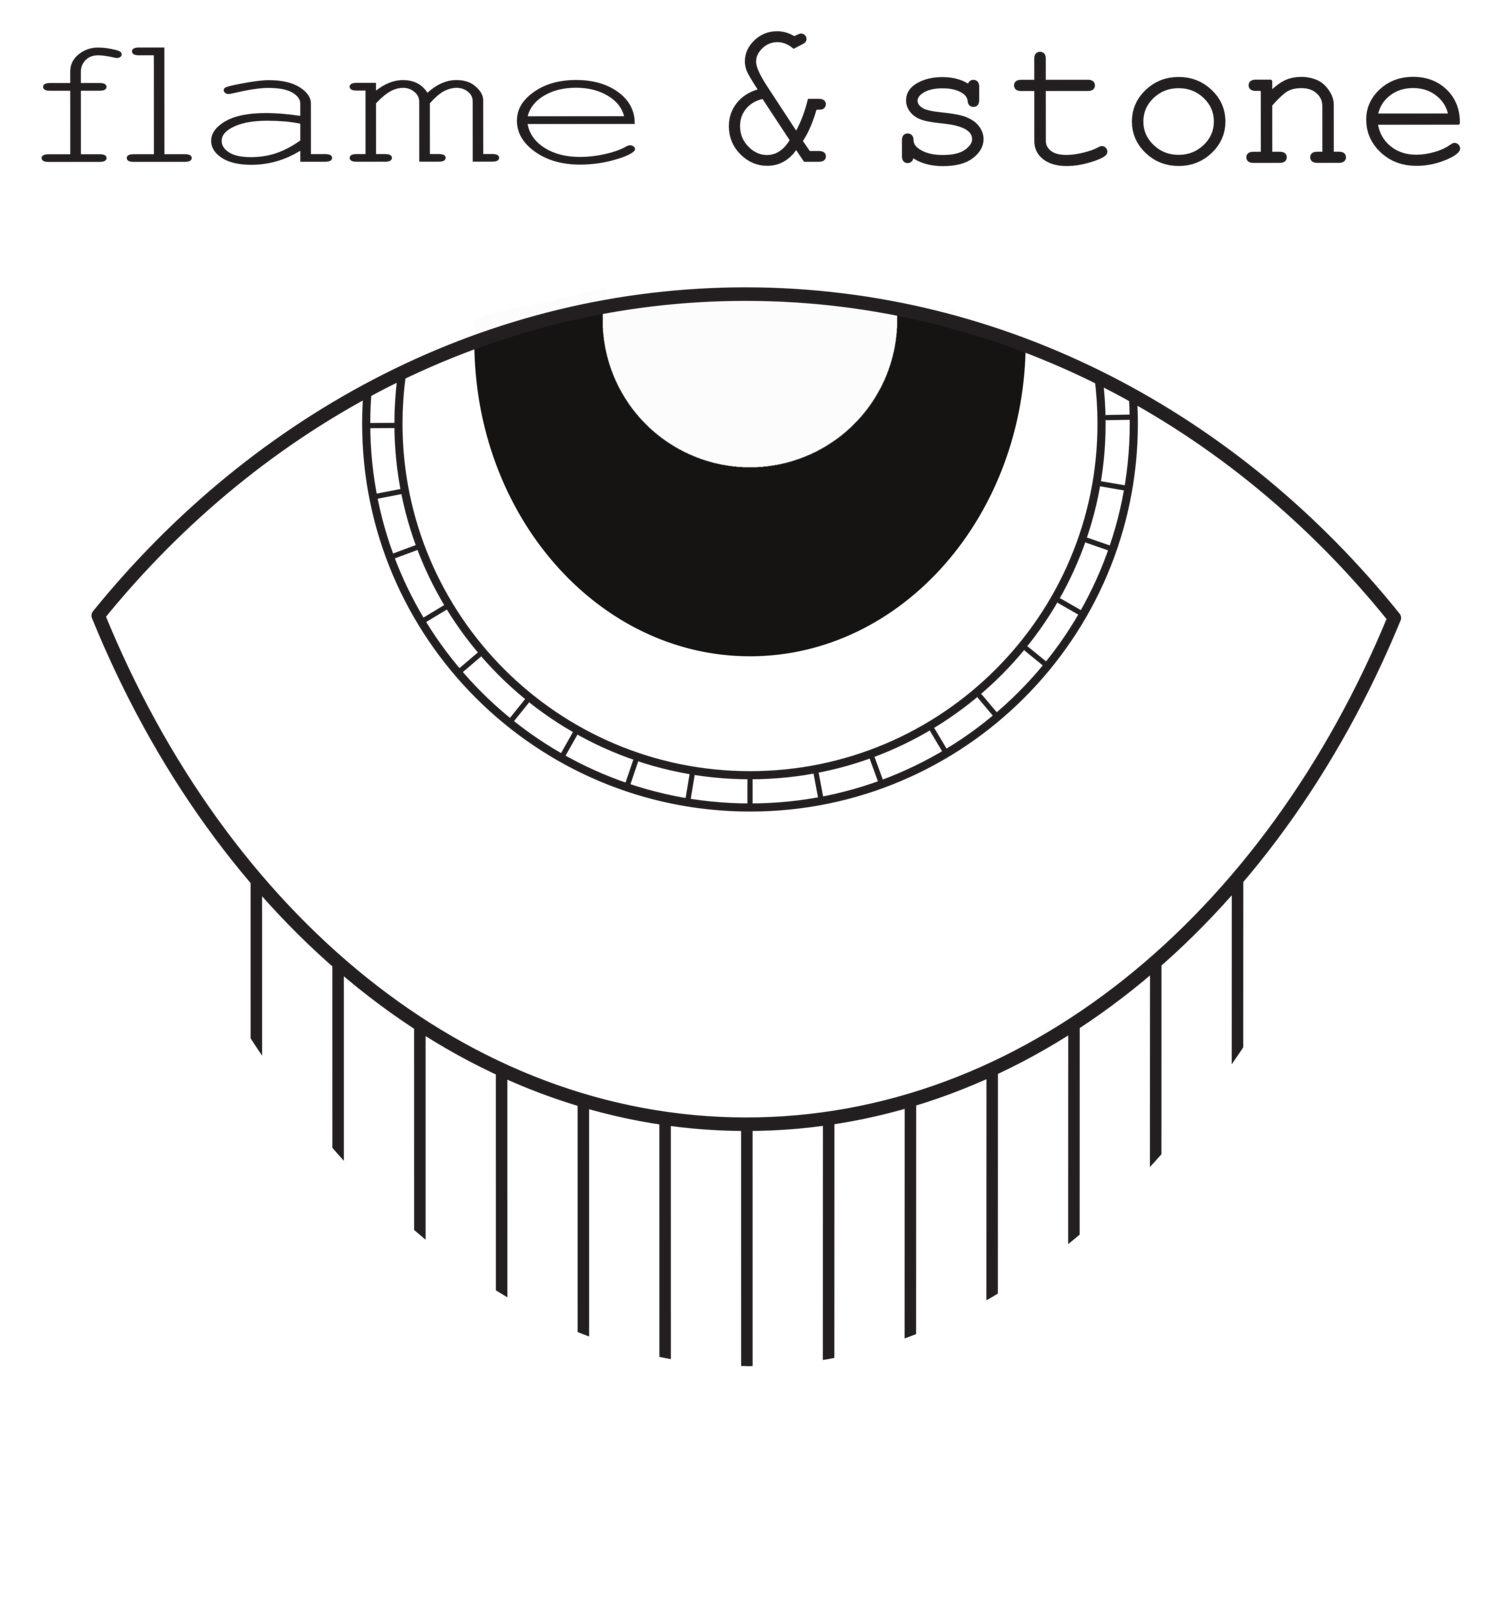 flame & stone